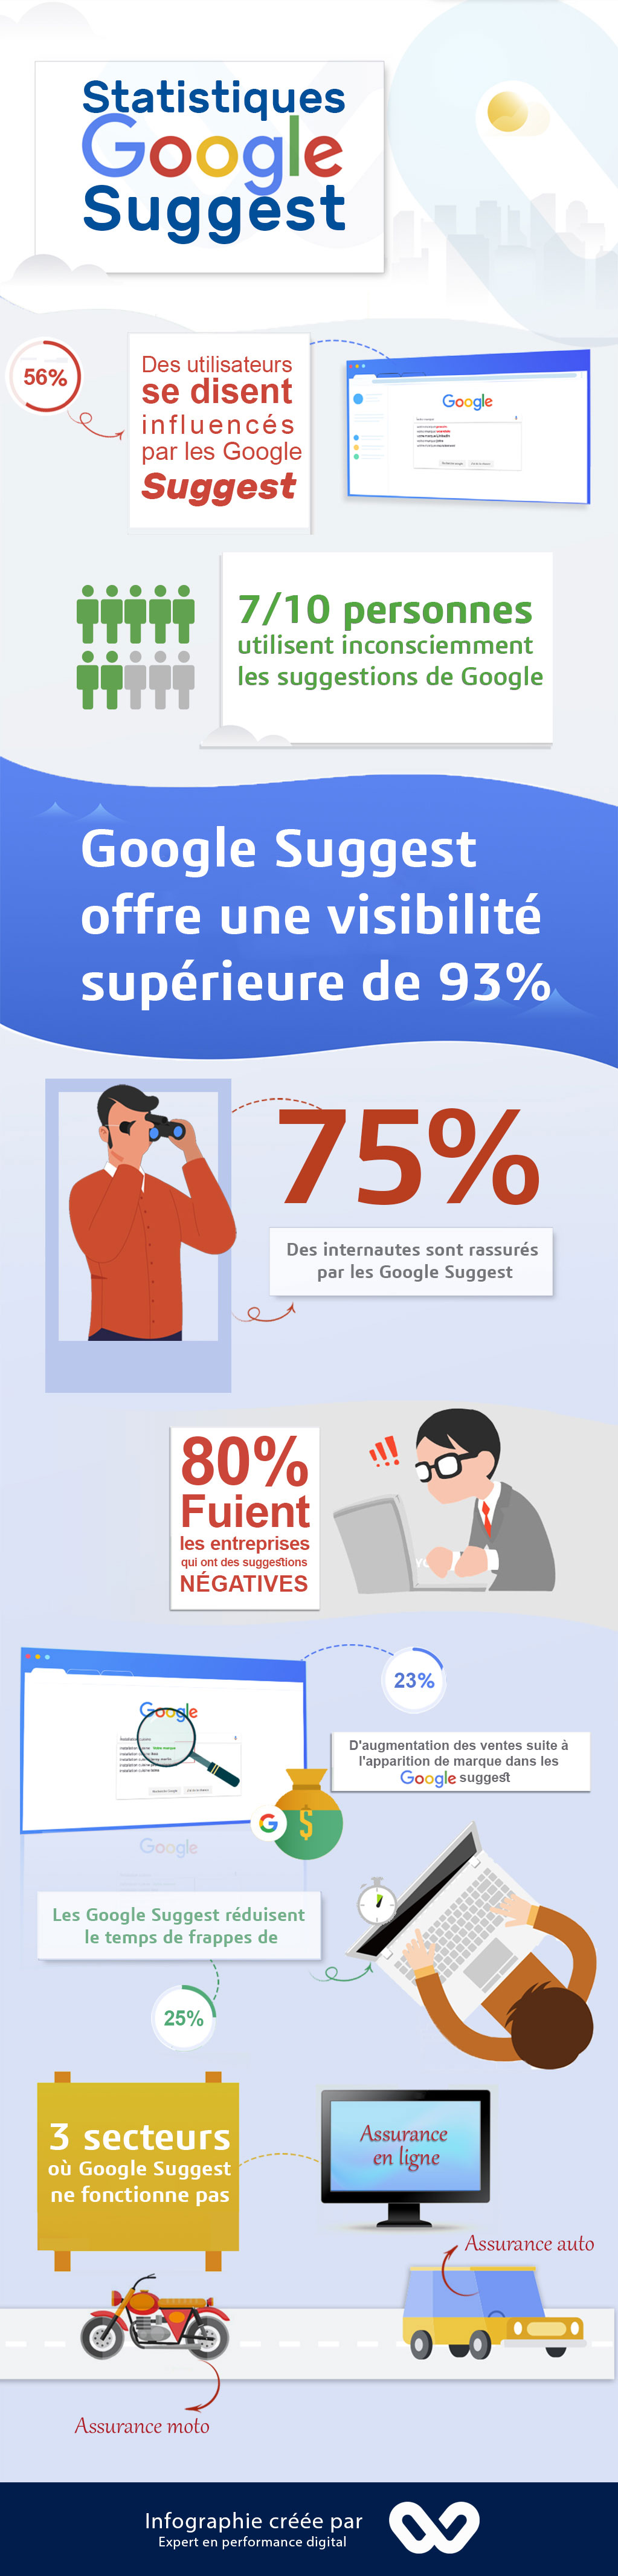 Google Suggest infographie